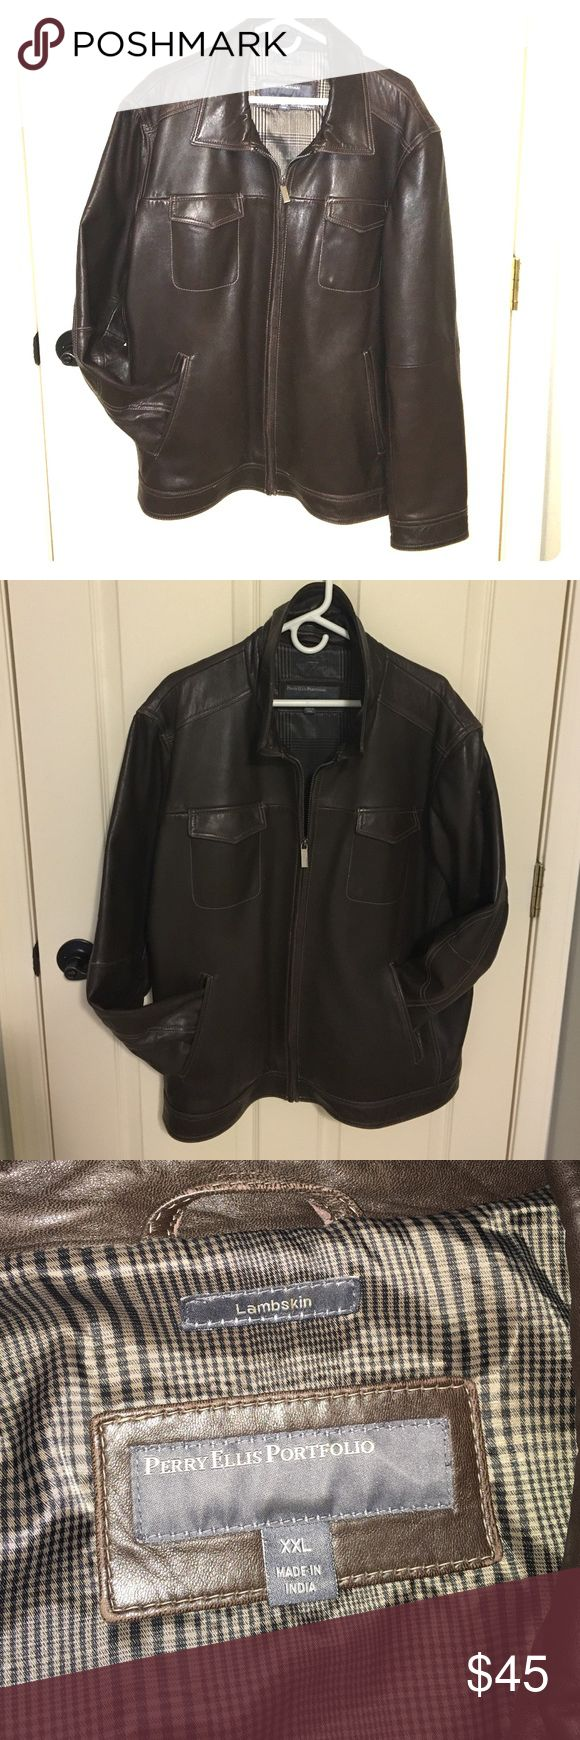 Real Lambskin Leather Jacket! Dark Brown Men's Leather Jacket. Great Condition! Perry Ellis Jackets & Coats